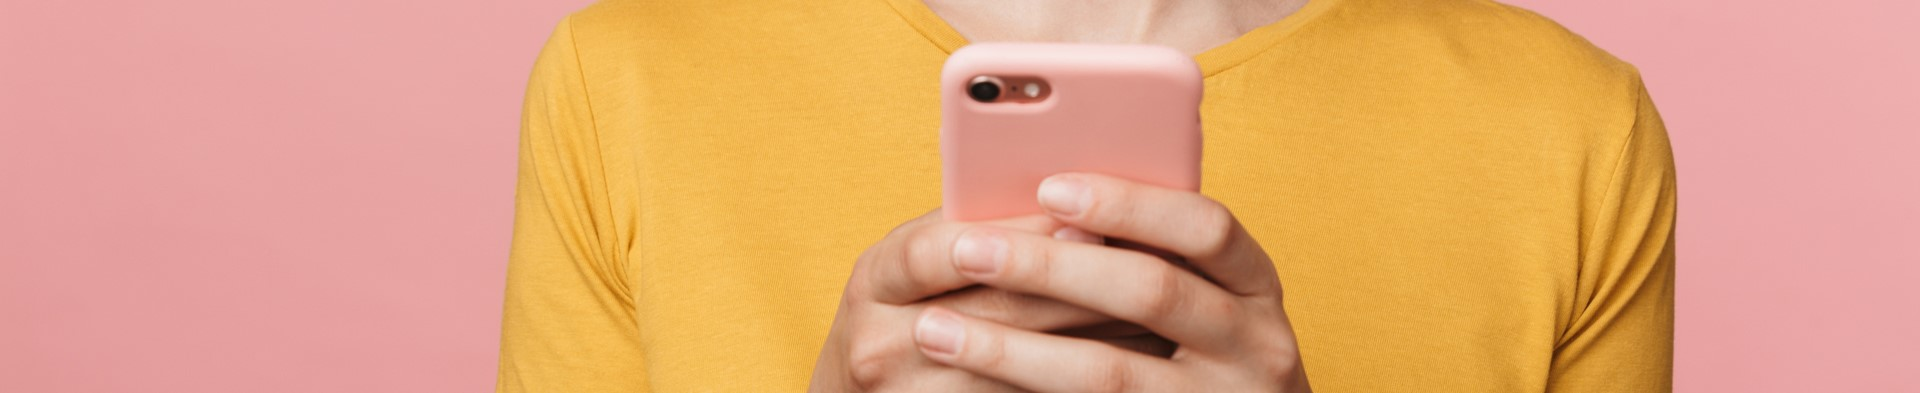 Photo of hands holding a phone on a pink background